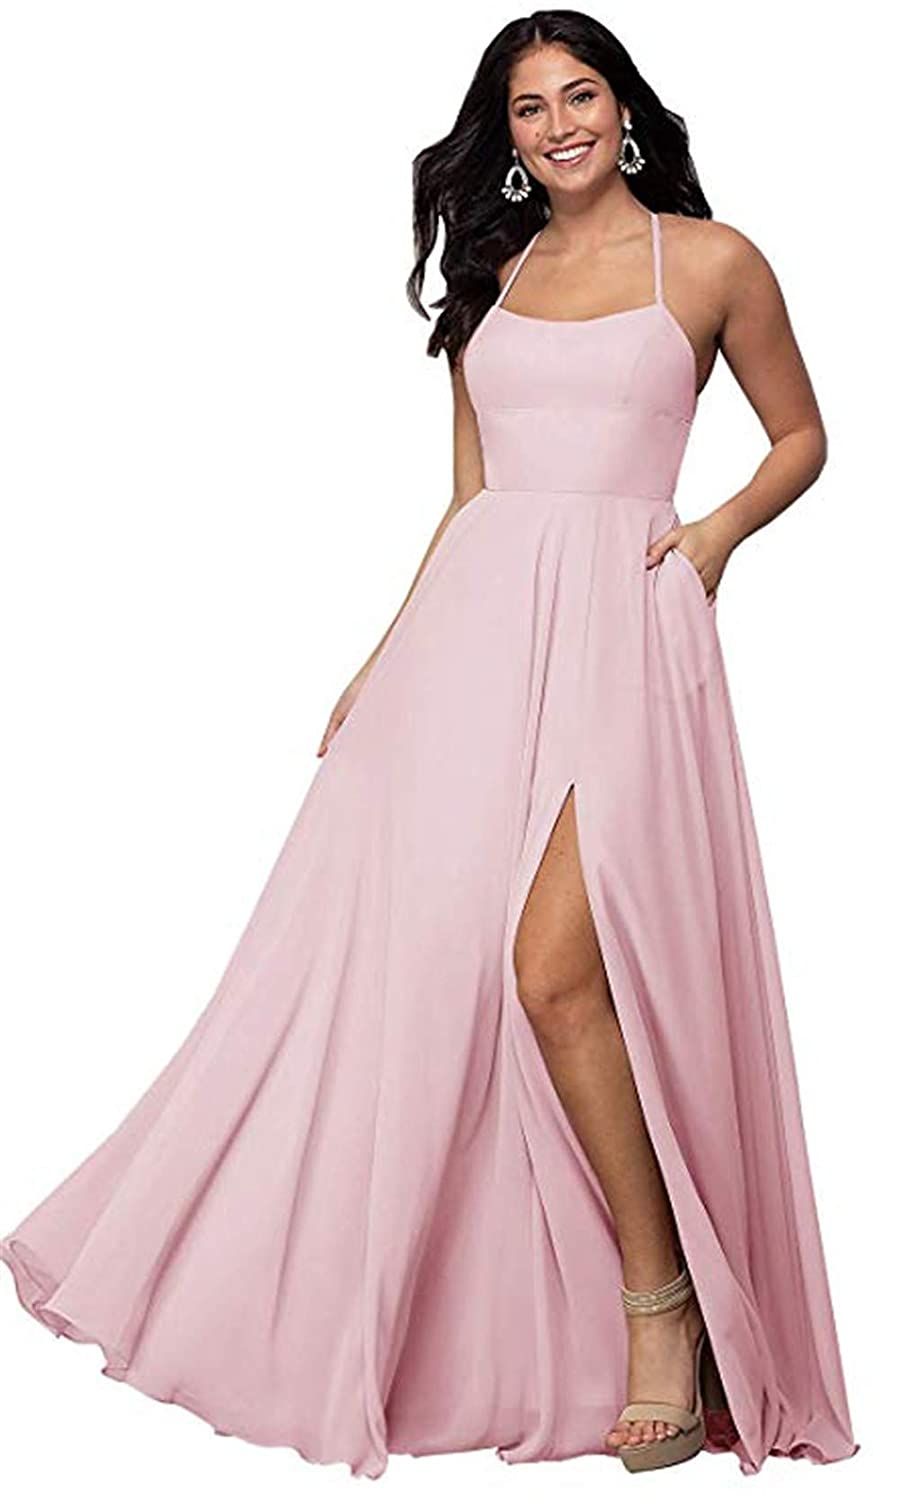 bluesh Pink Halter A Line Long Bridesmaid Dresses Split Prom Evening Gowns with Pocket